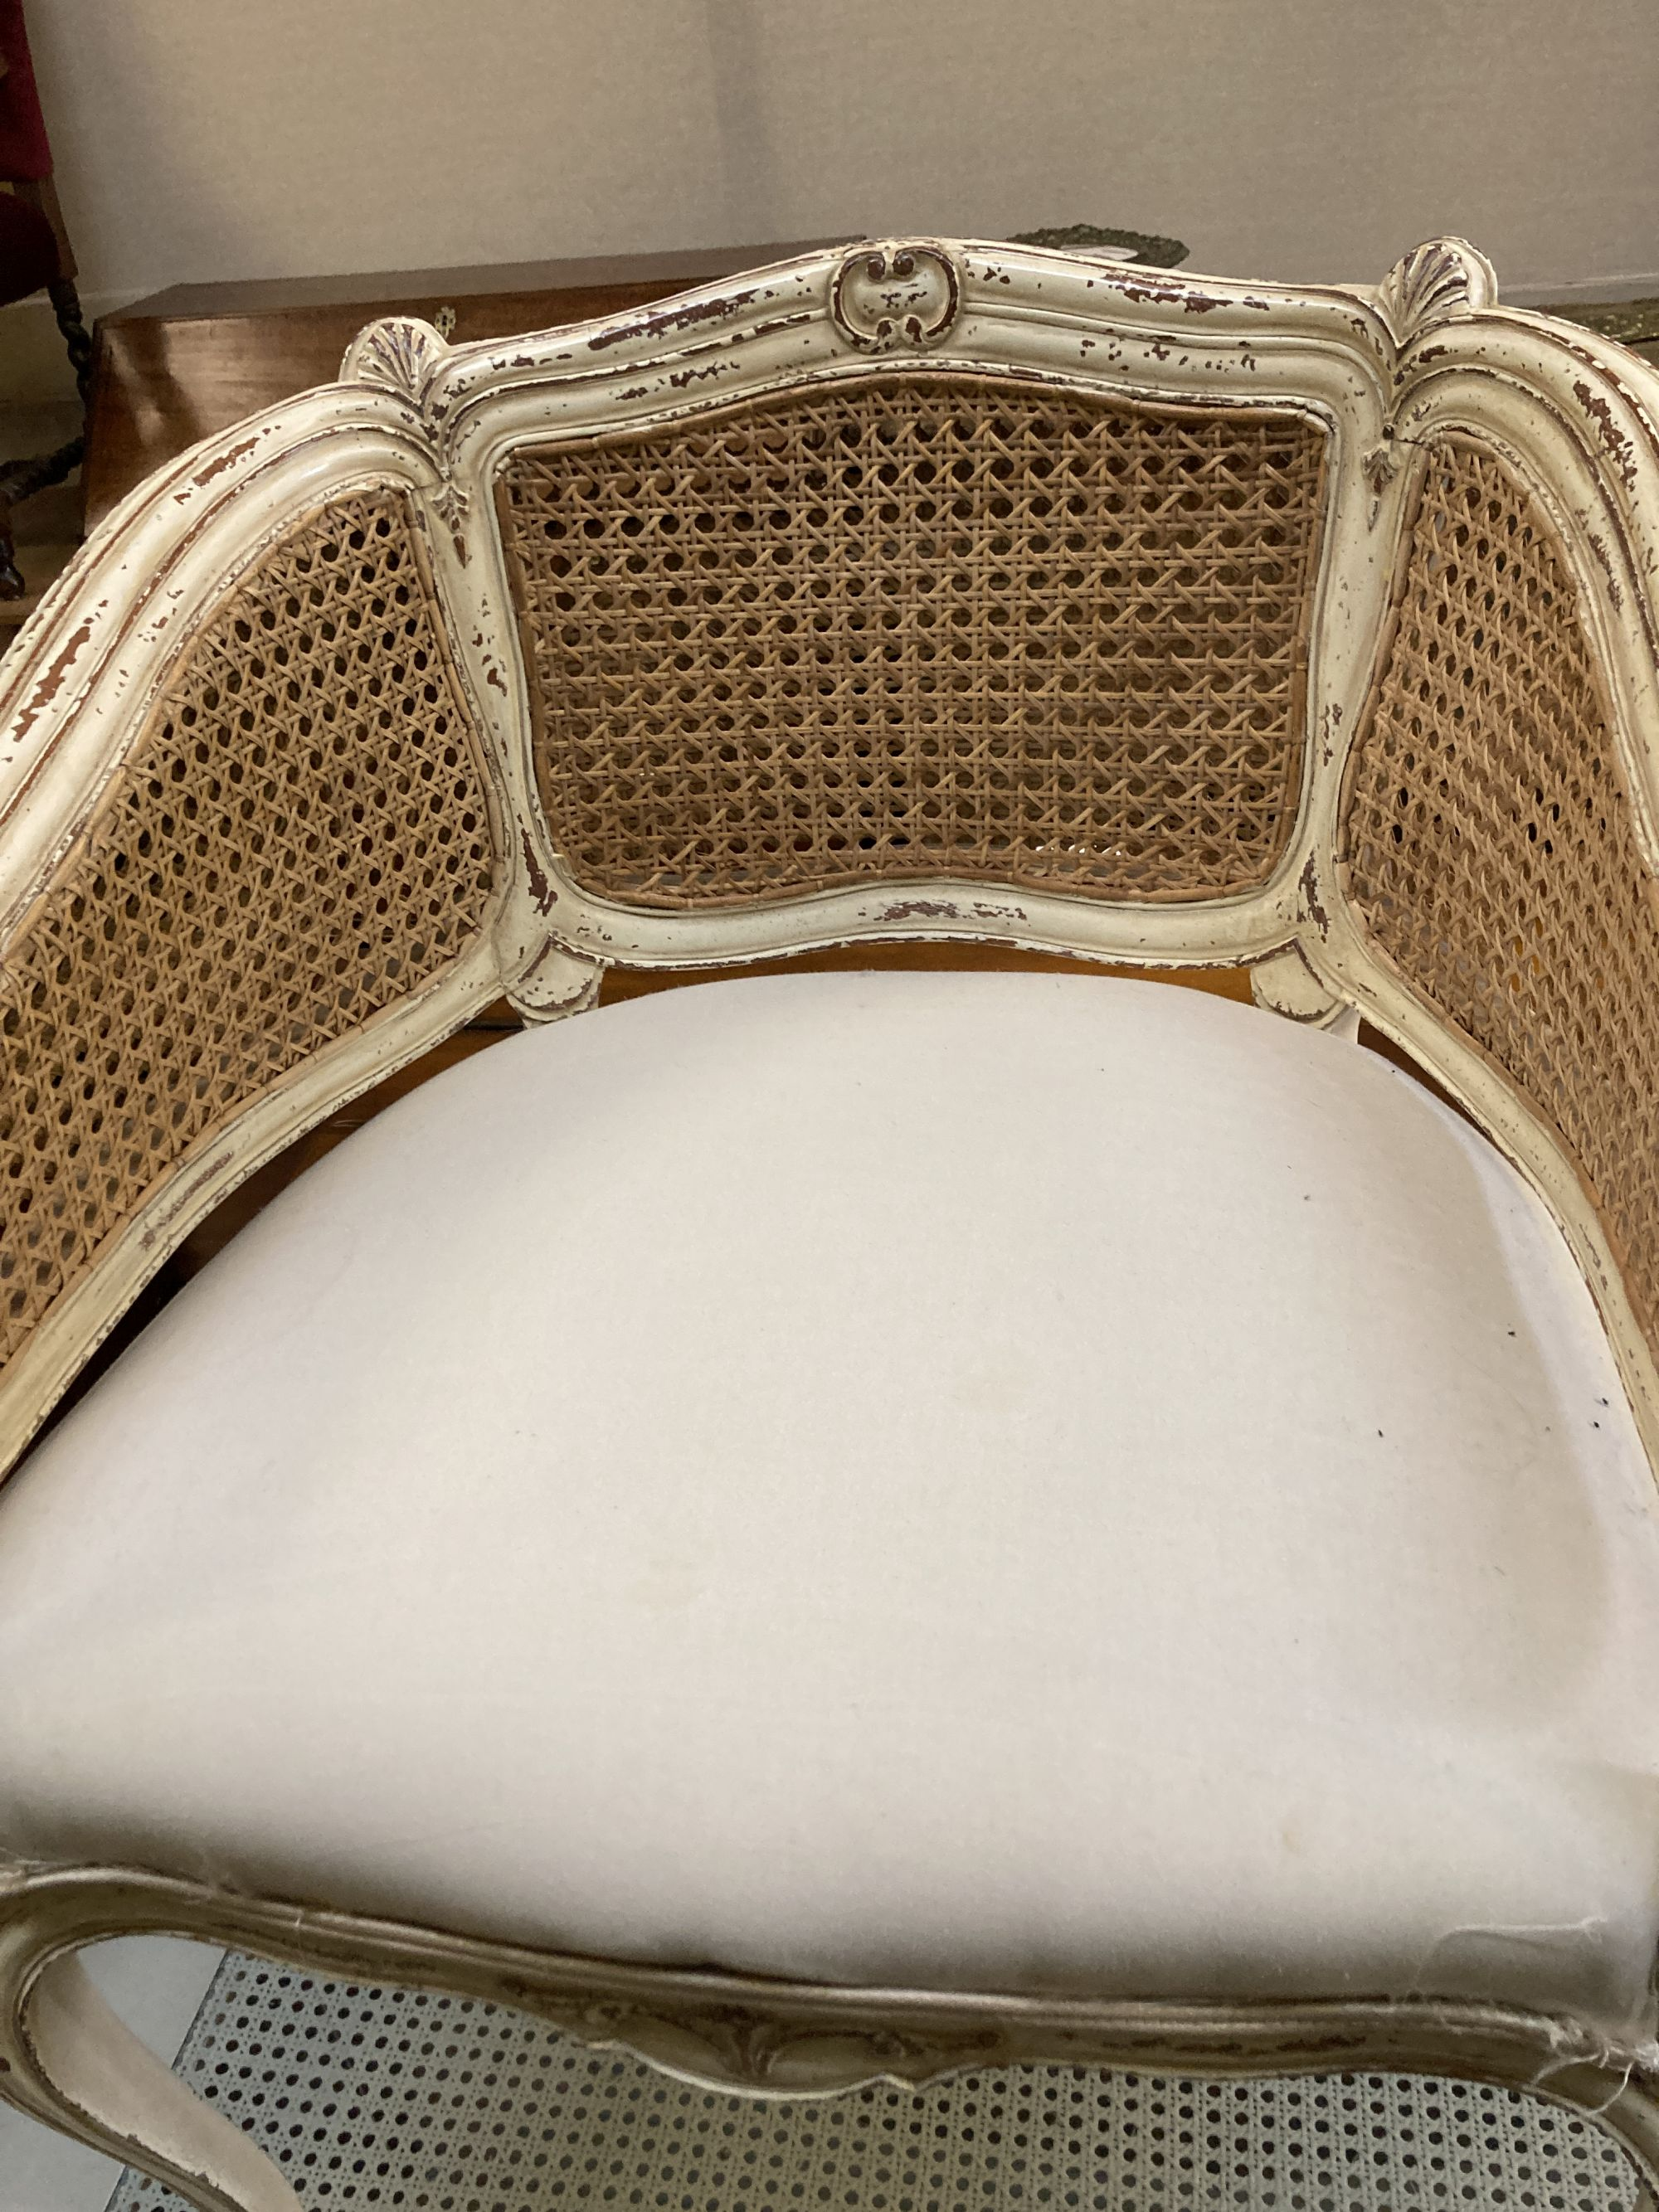 A Louis XVI style painted caned tub framed chair, width 62cm, depth 50cm, height 80cm - Image 2 of 4